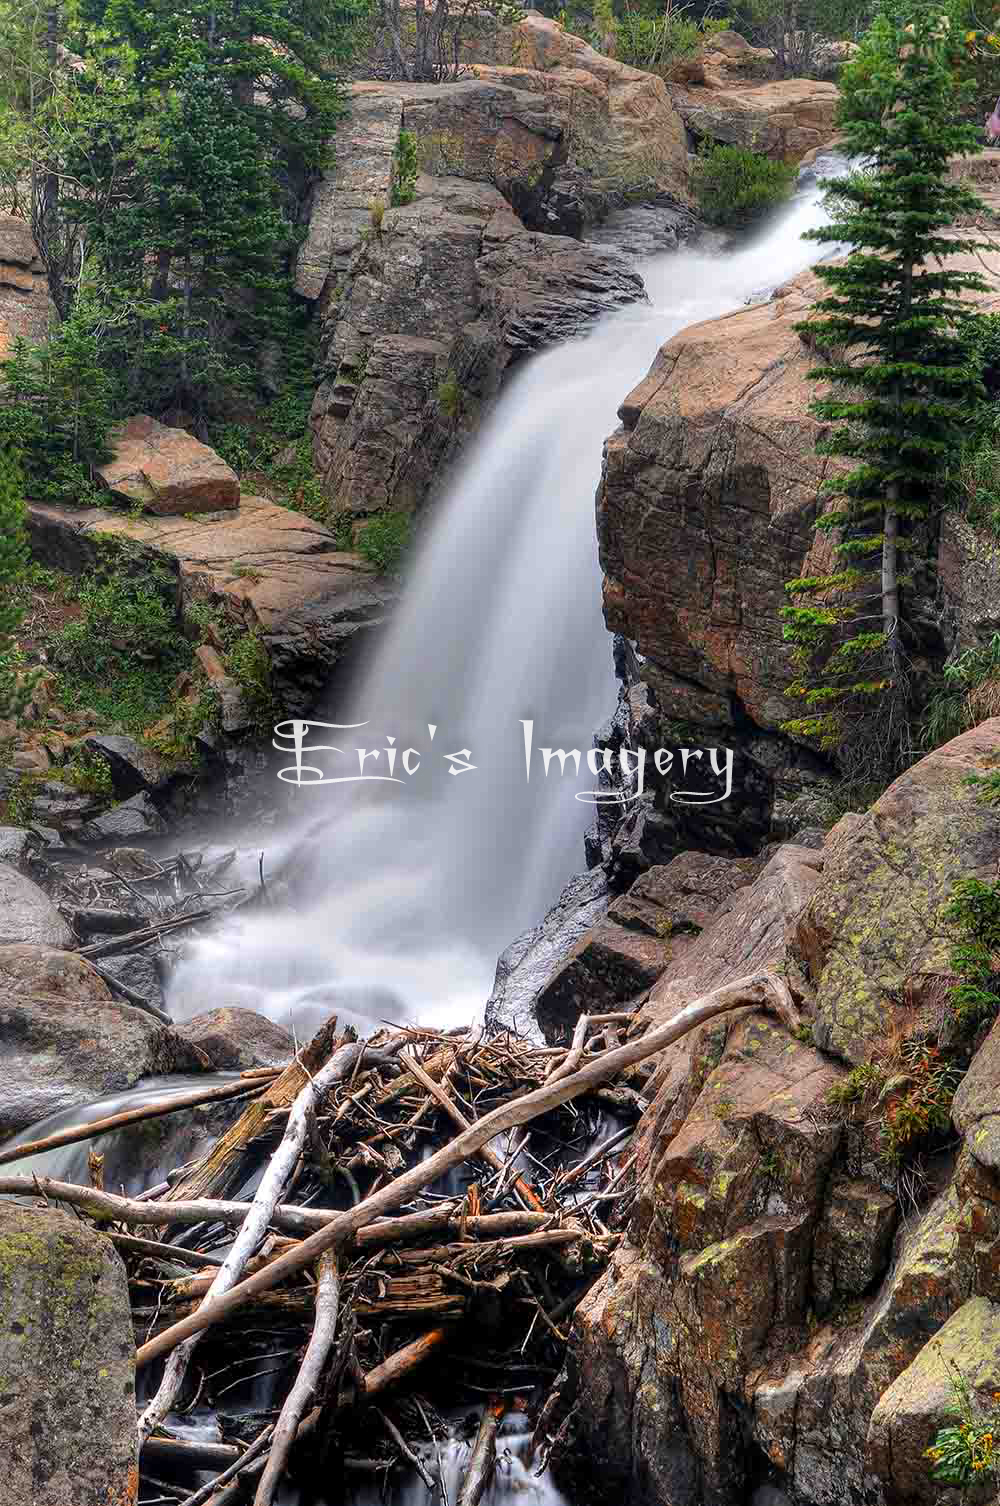 Alberta-Falls-Rocky-Mountain-National-Park.jpg